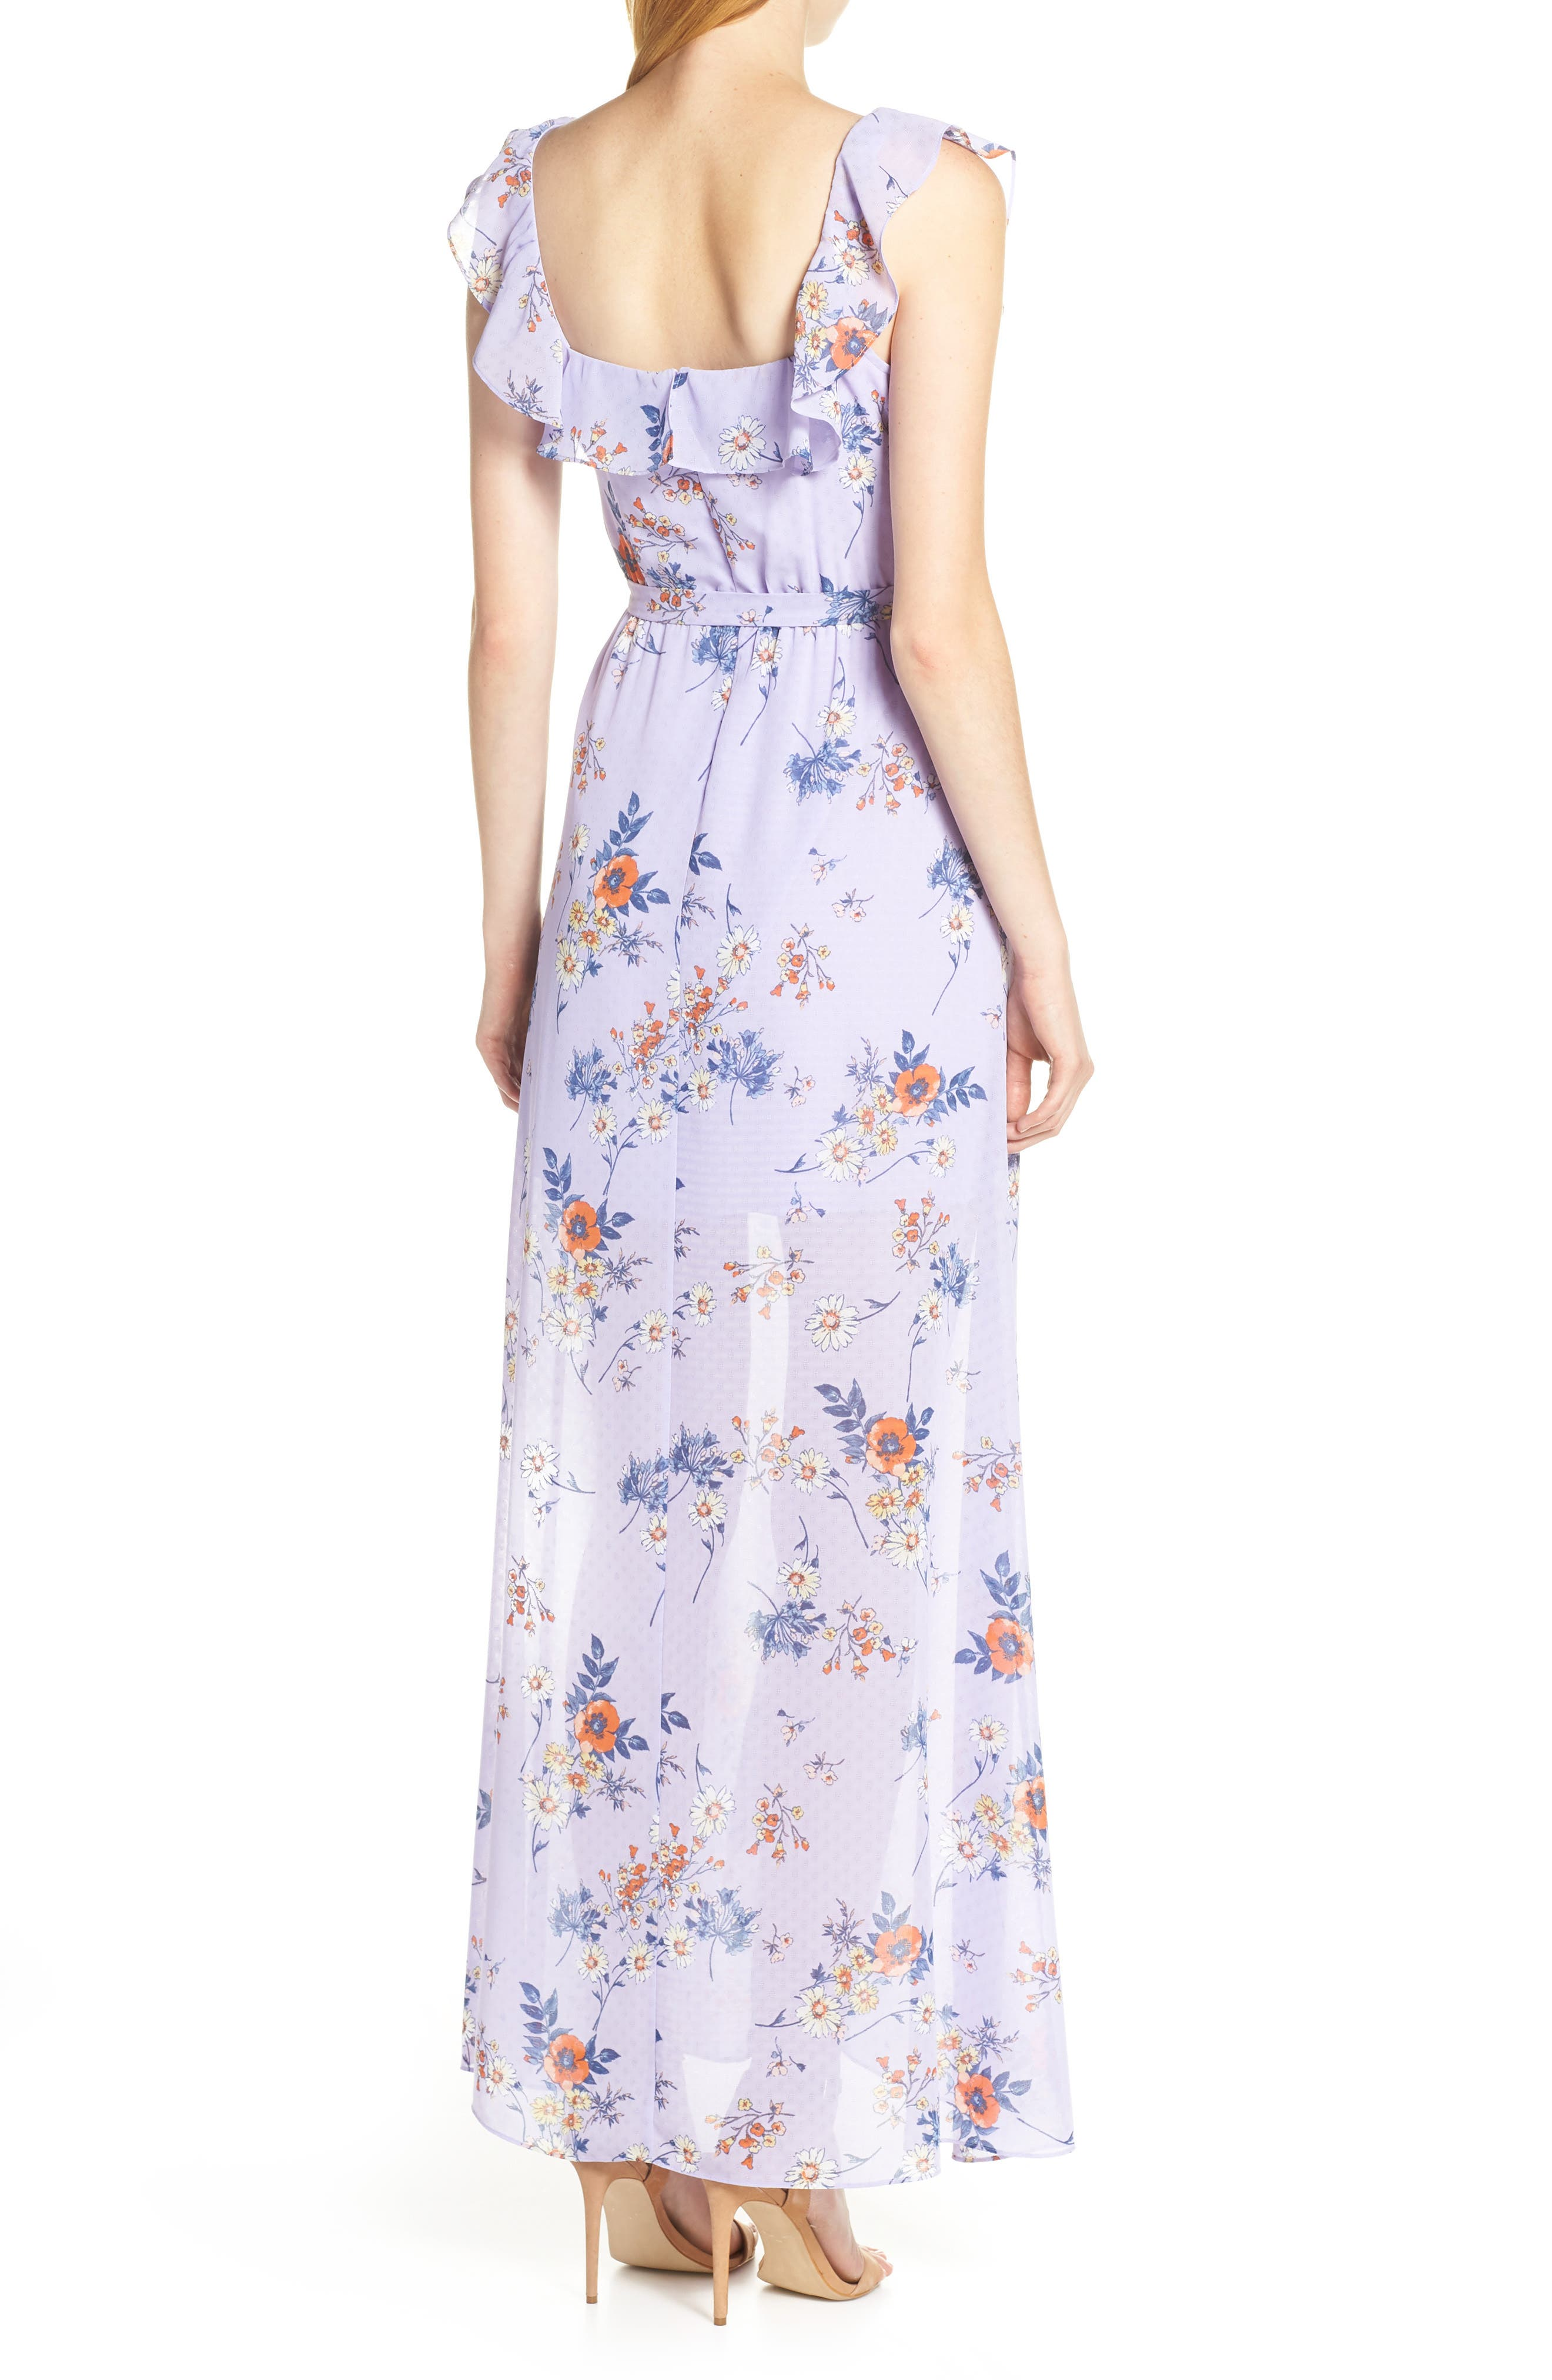 ALI & JAY, Sure Thing Maxi Dress, Alternate thumbnail 2, color, LAVENDER FIELD FLORAL